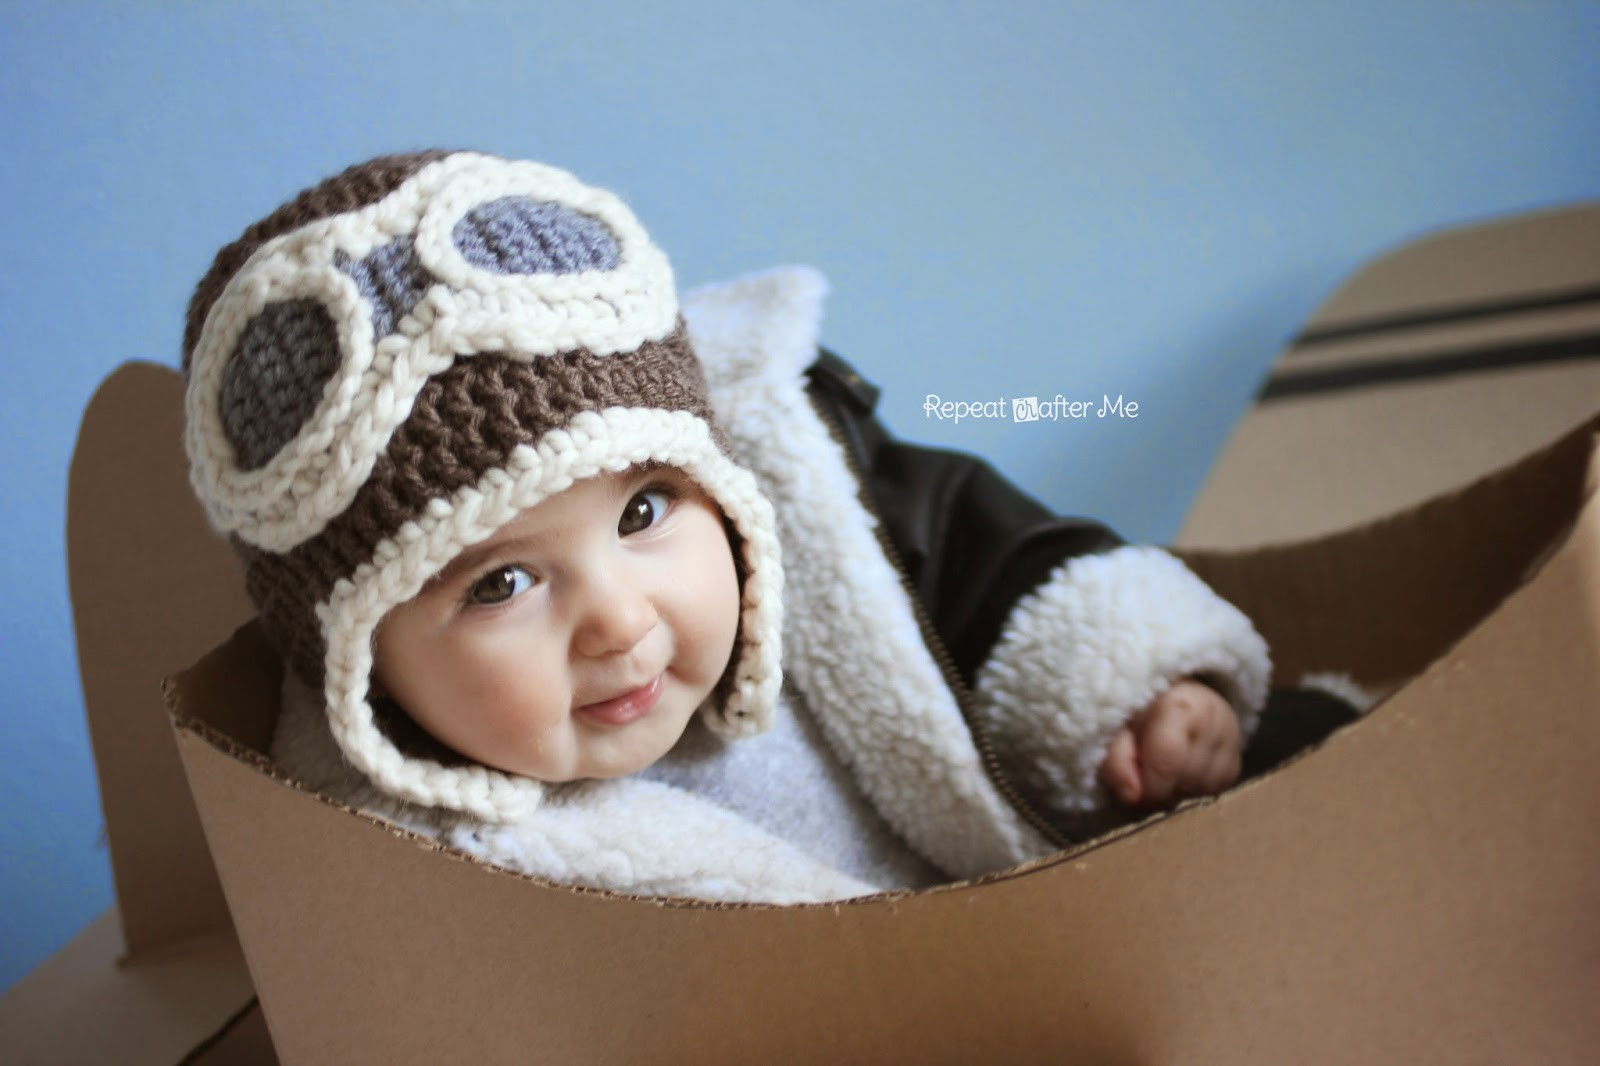 Free Crochet Baby Hats Unique 41 Adorable Crochet Baby Hats & Patterns to Make Of Attractive 48 Photos Free Crochet Baby Hats